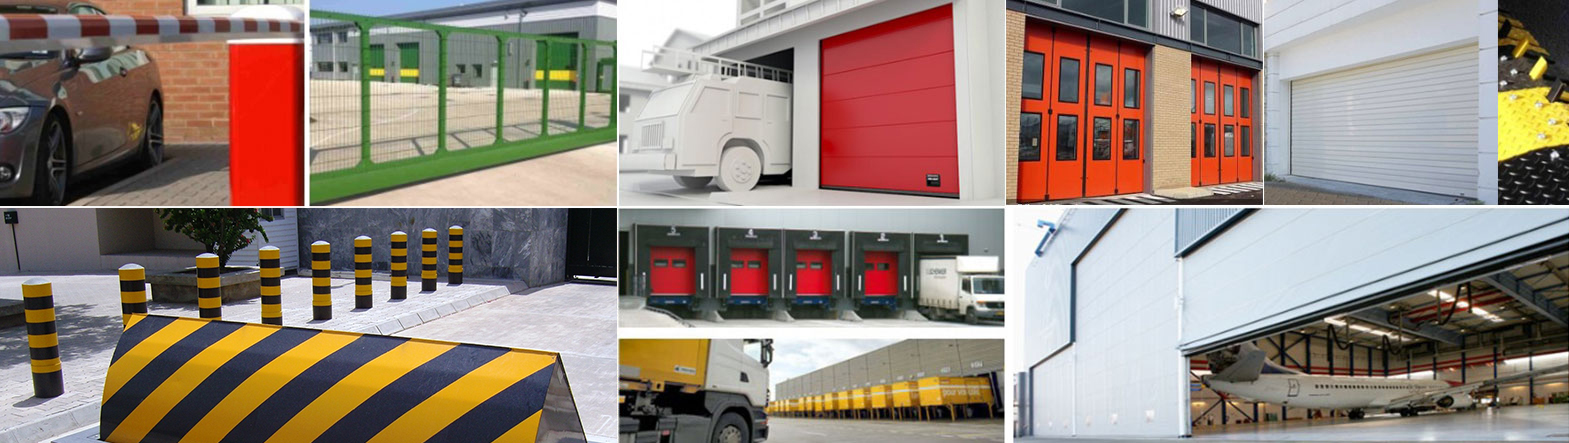 Rumaillah Group gate barriers and warehouse equipement